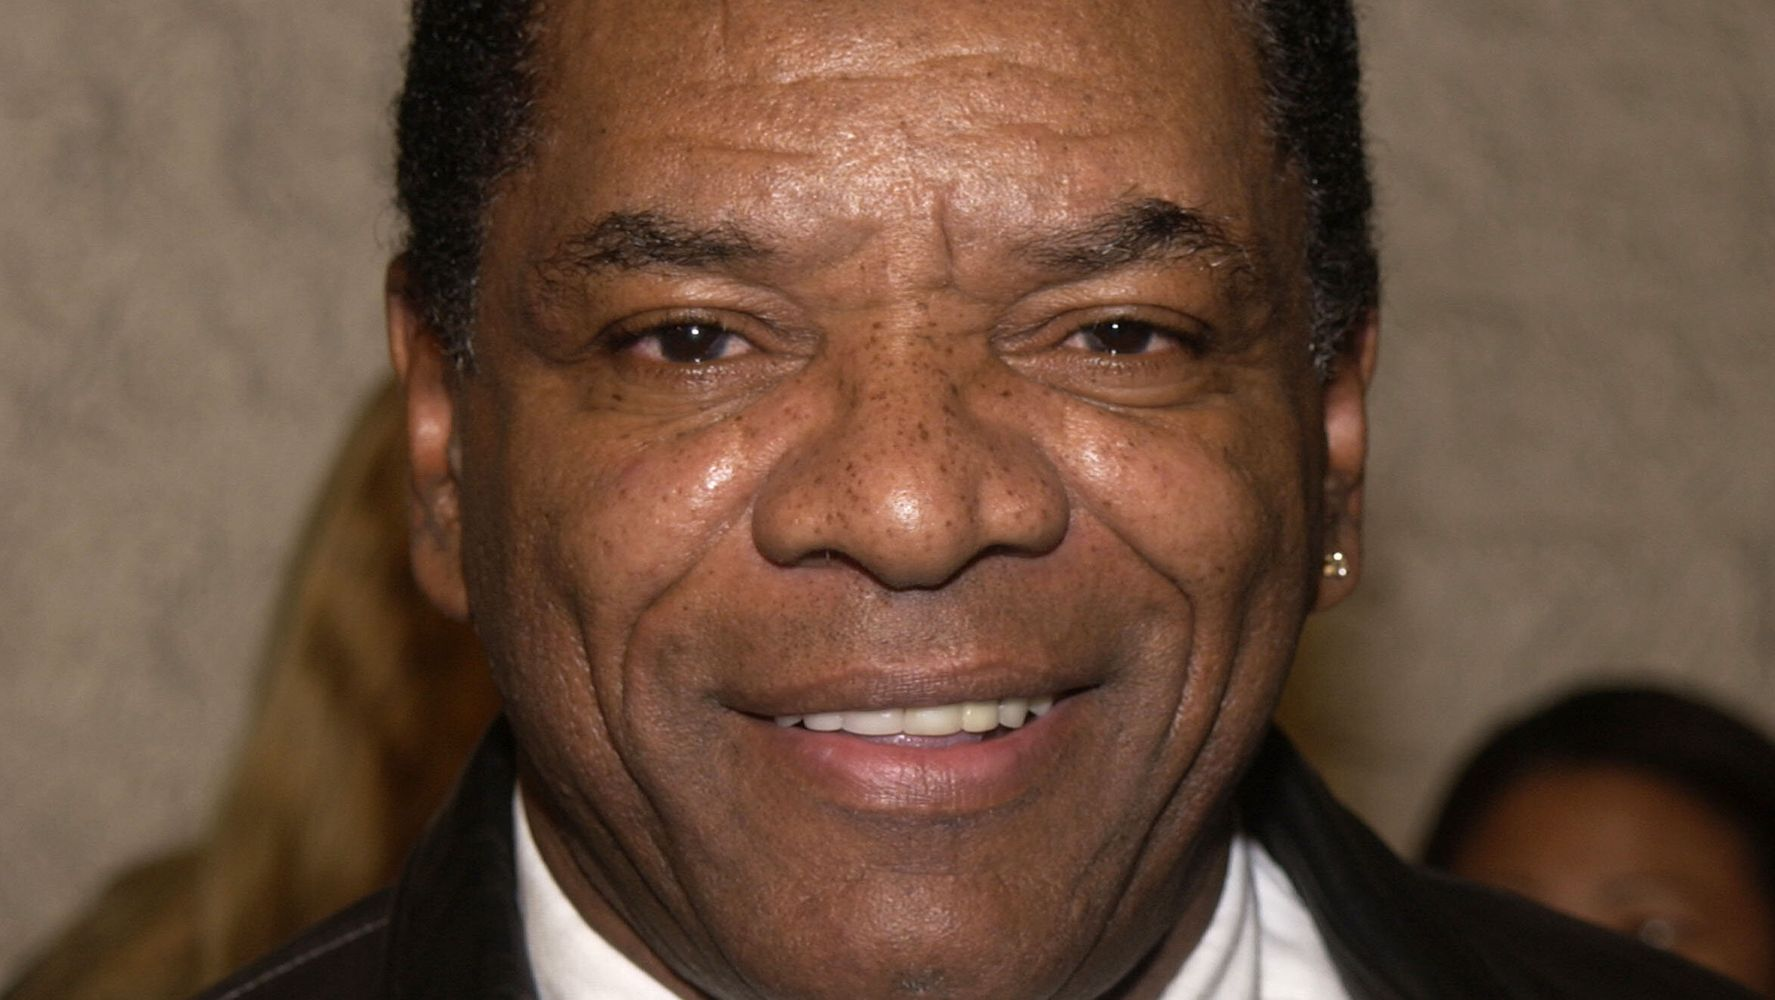 Westlake Legal Group 5db92f18210000bf3634b6ca Comedic Actor John Witherspoon Of 'Friday' Fame Dies